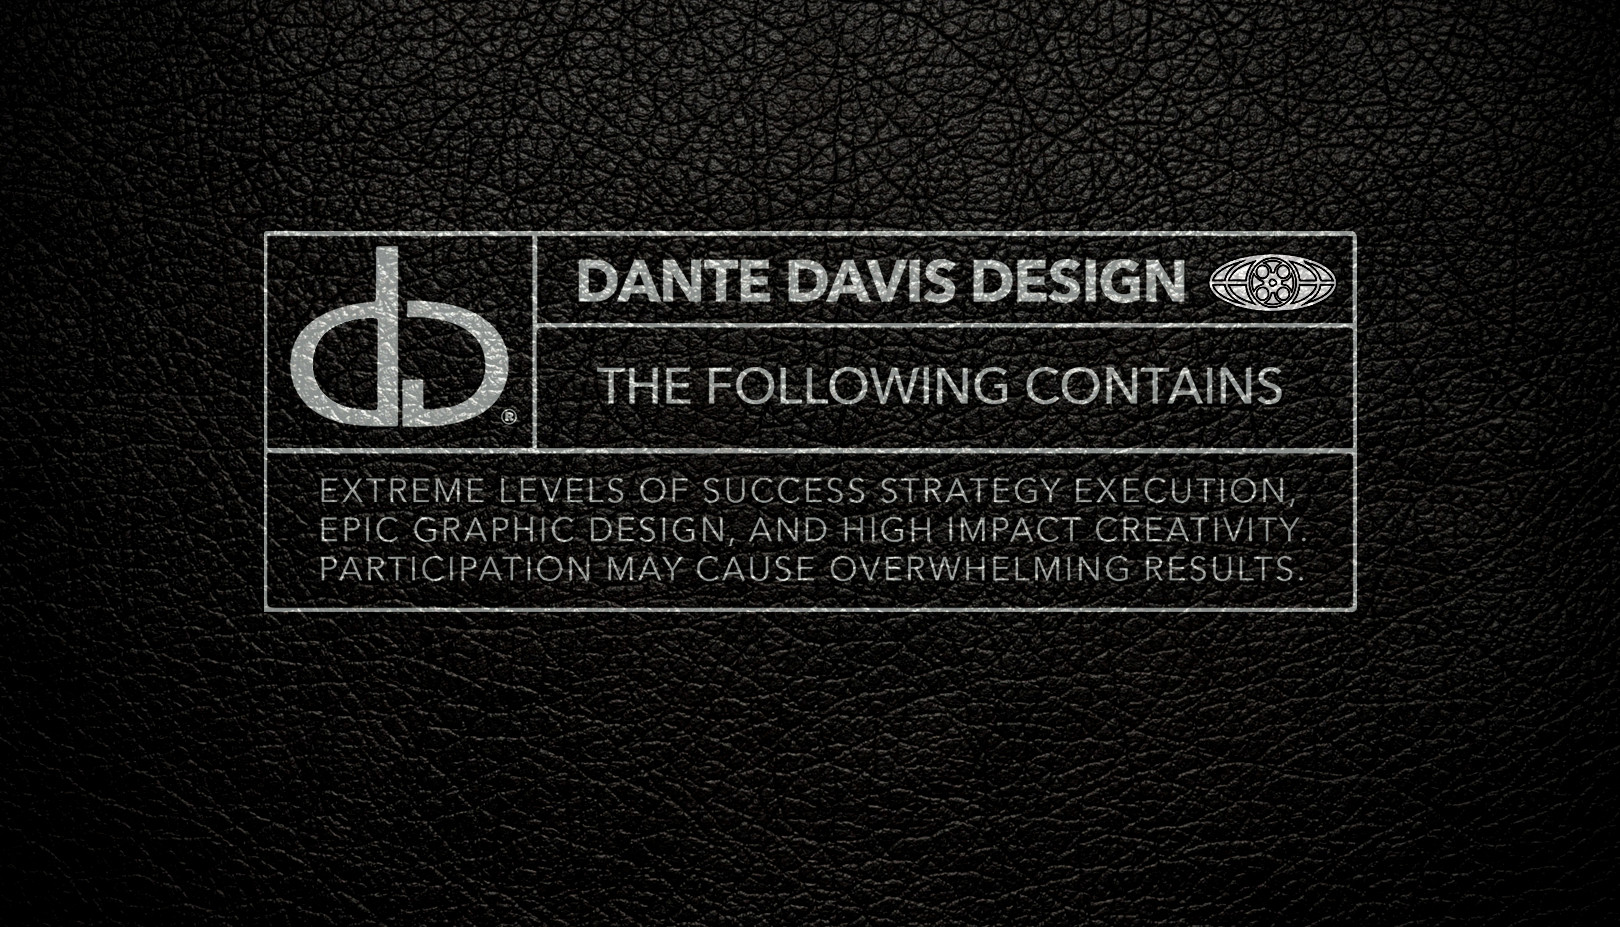 dantedavisdesign-new-background-advisory-e1452541163583